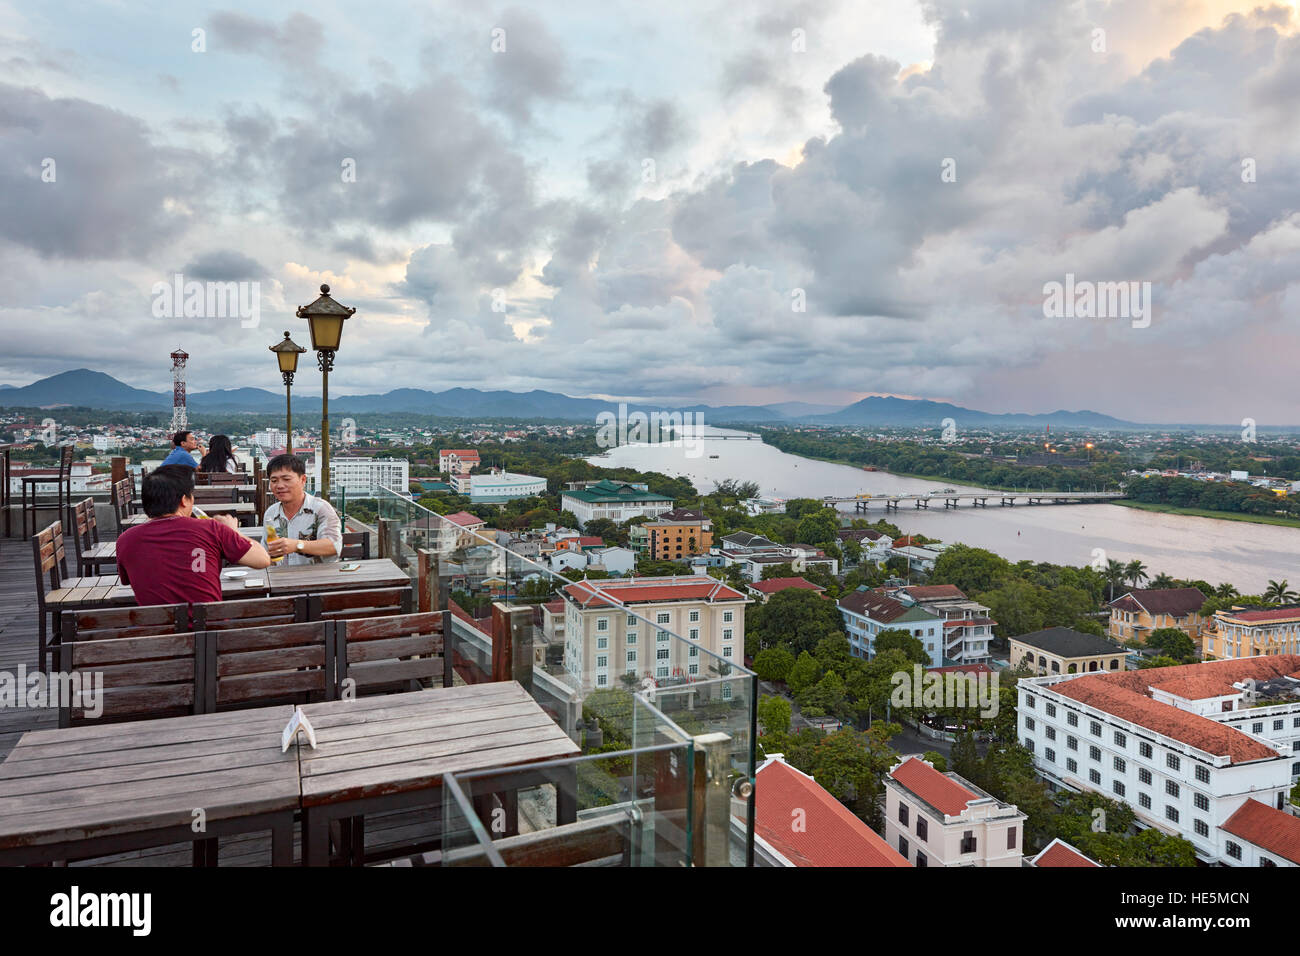 Elevated view of the city and Perfume River from Imperial Hotel rooftop bar. Hue, Vietnam. - Stock Image